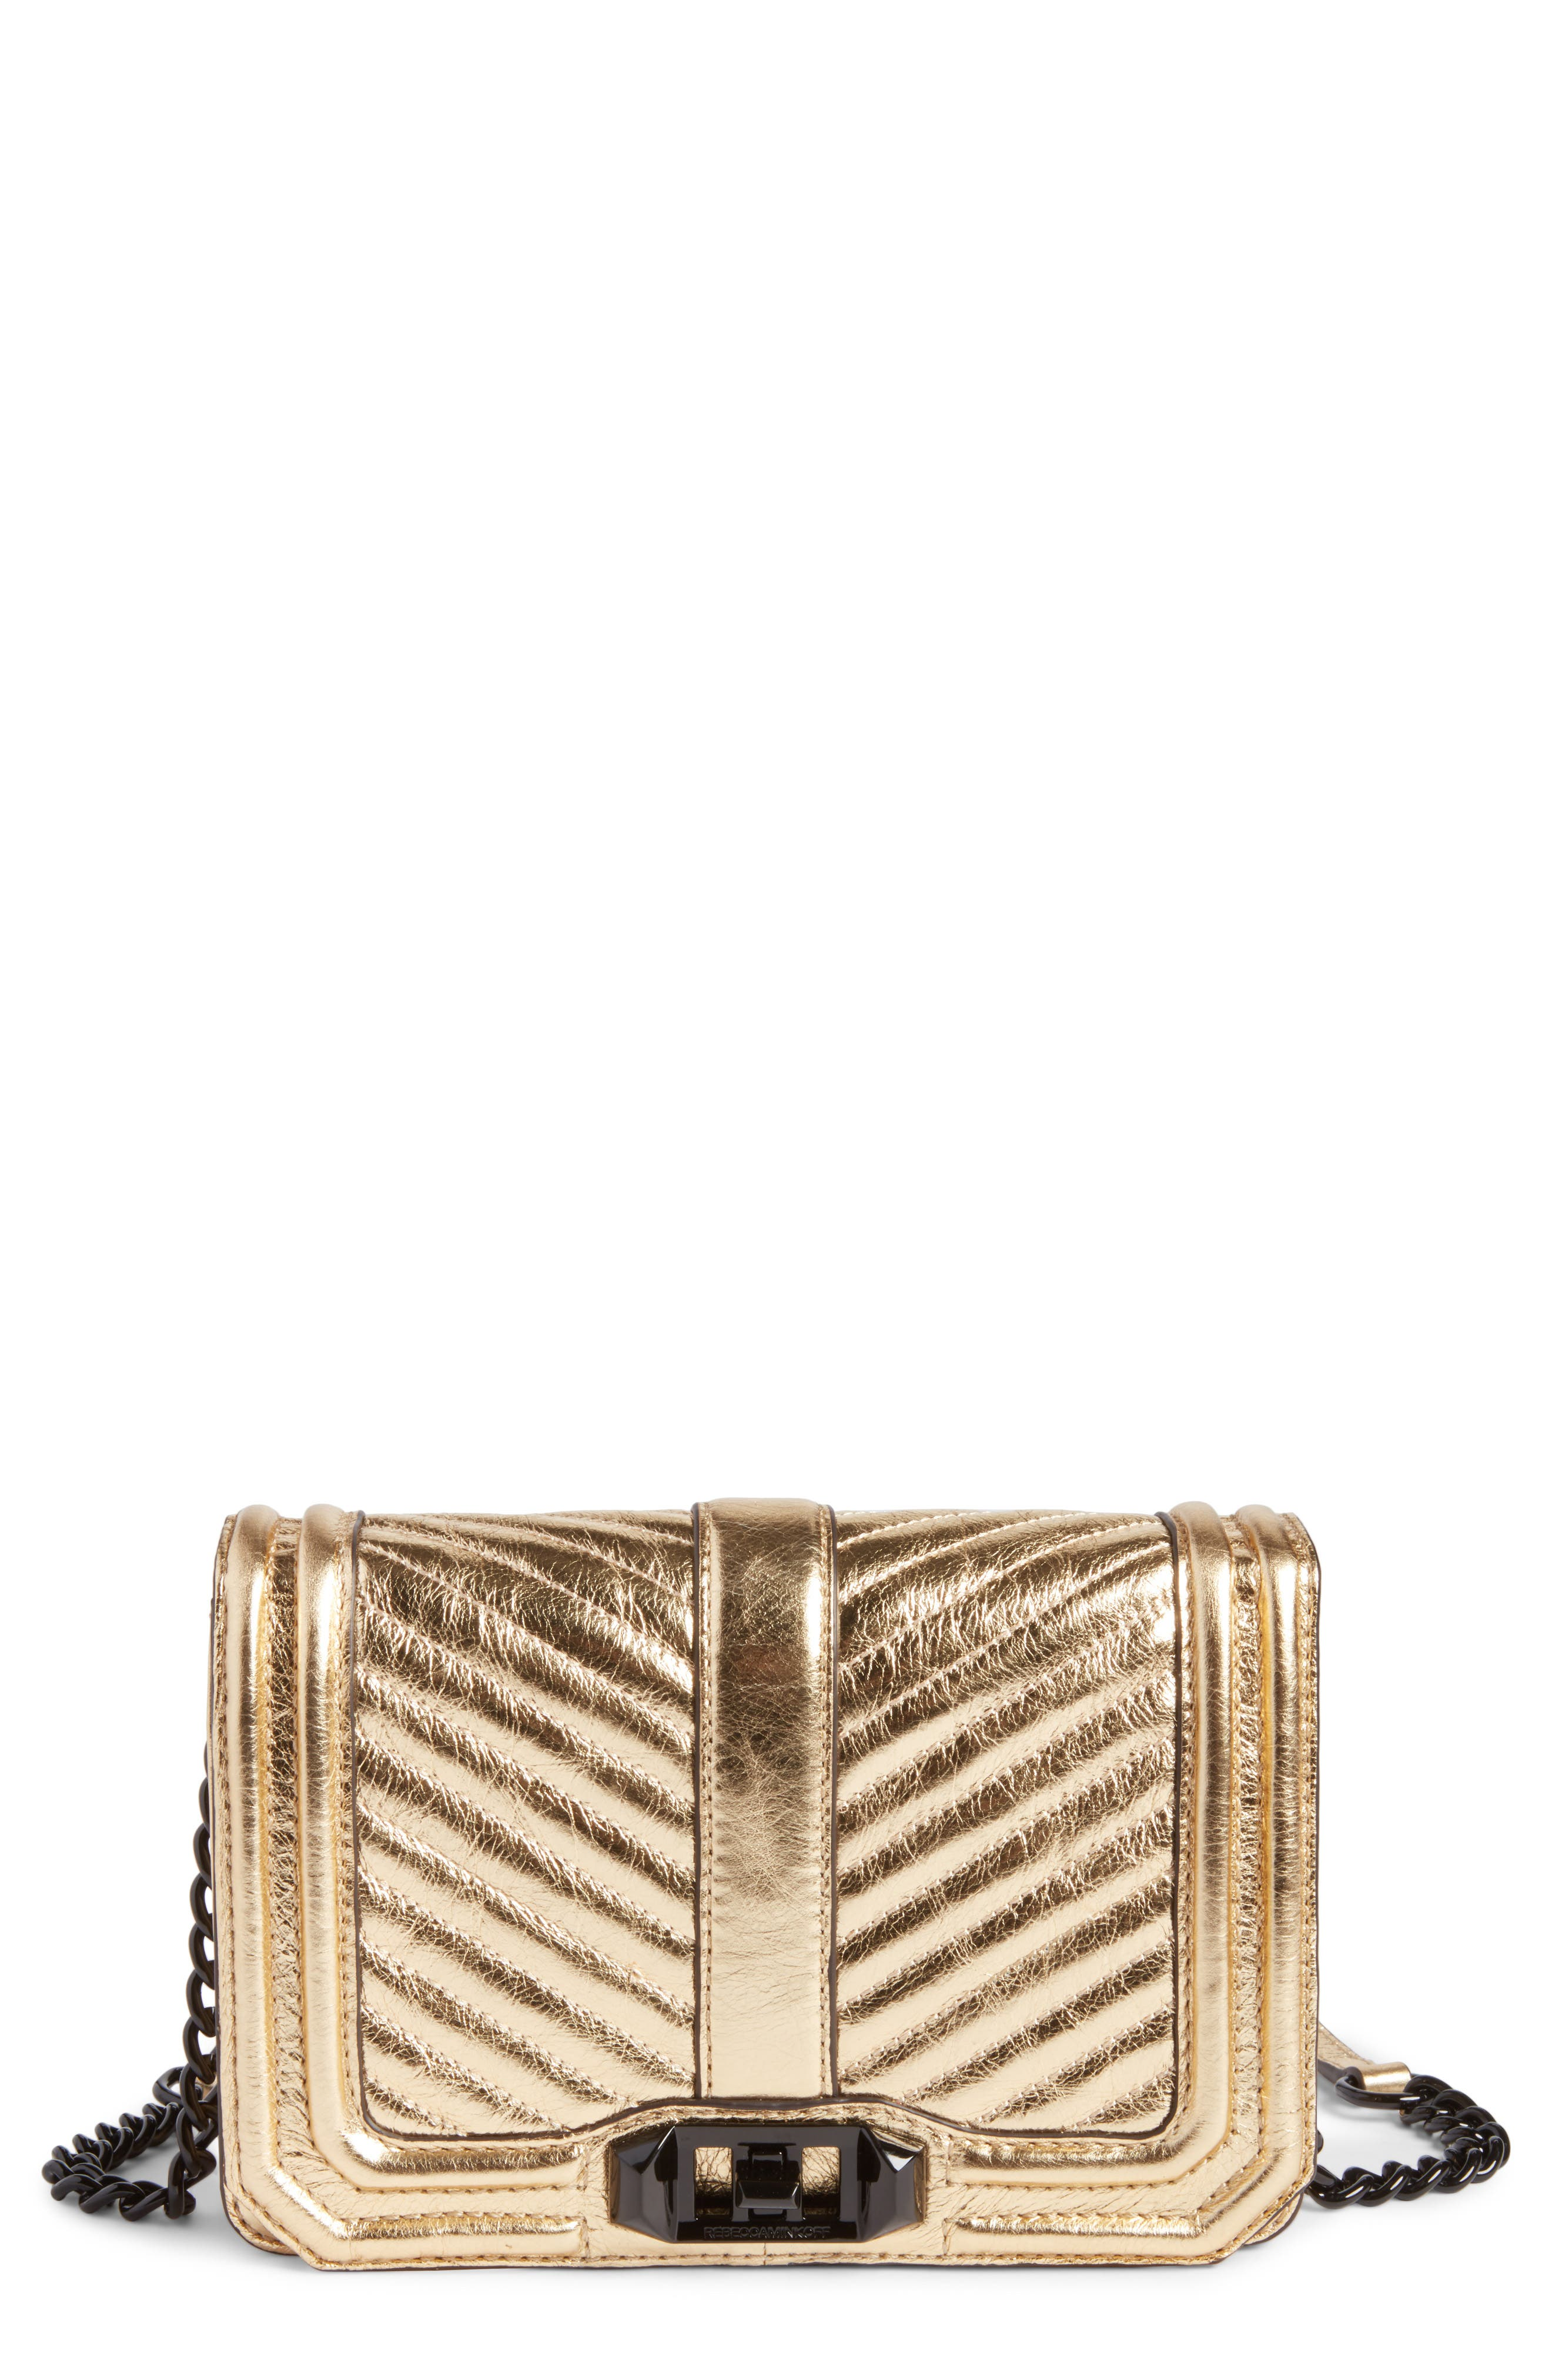 Rebecca Minkoff Small Love Metallic Leather Crossbody Bag (Nordstrom Exclusive)